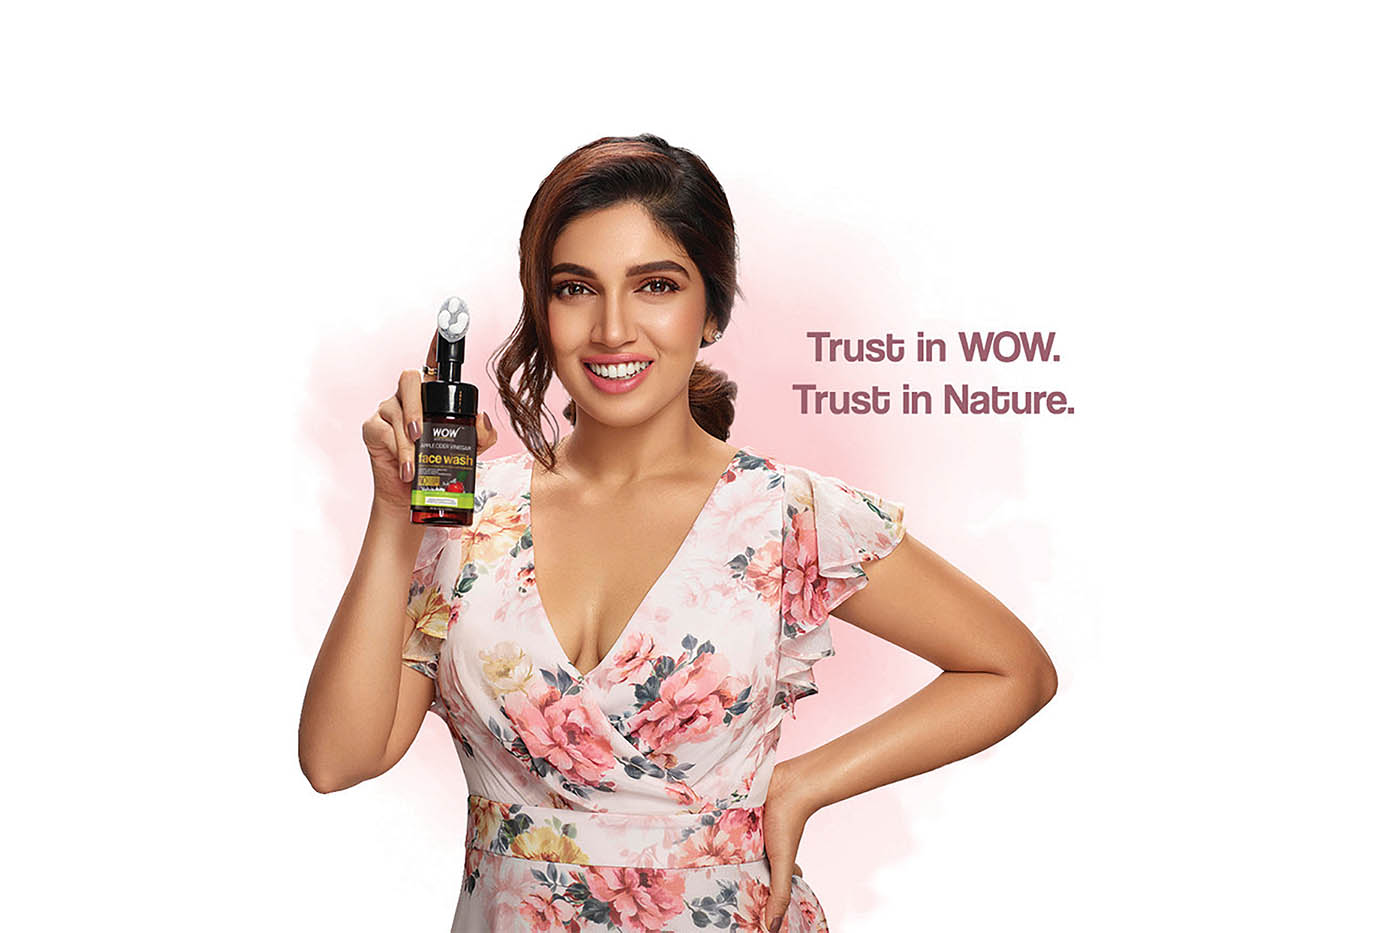 Bhumi Pednekar becomes brand ambassador for Wow Skincare